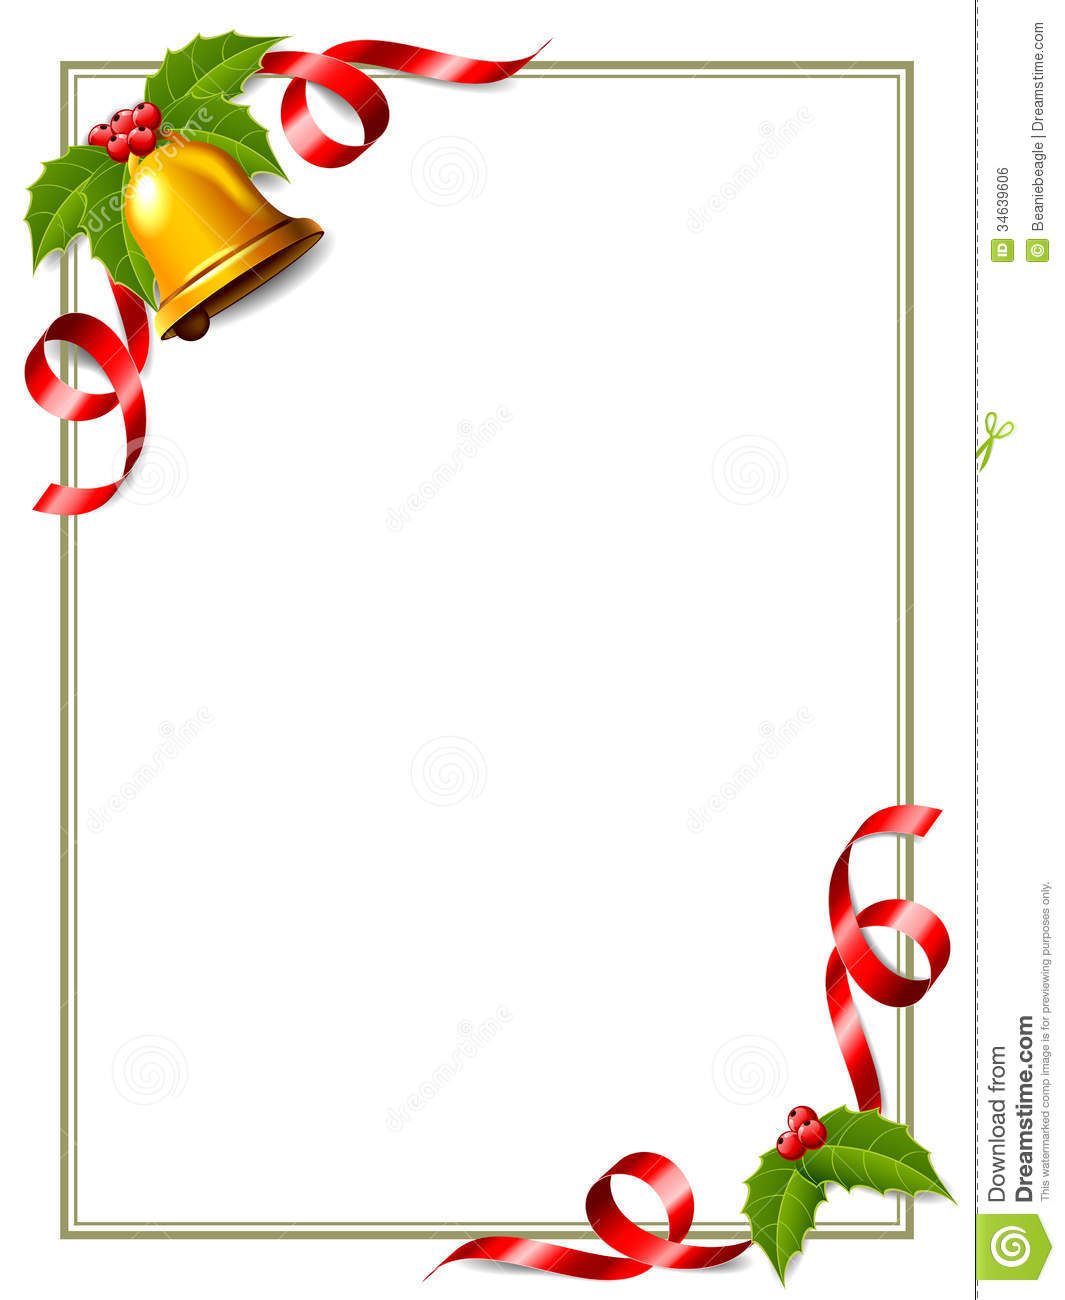 birthday page borders for microsoft word ; christas-border-christmas-decorated-some-holly-ribbon-gold-bell-34639606